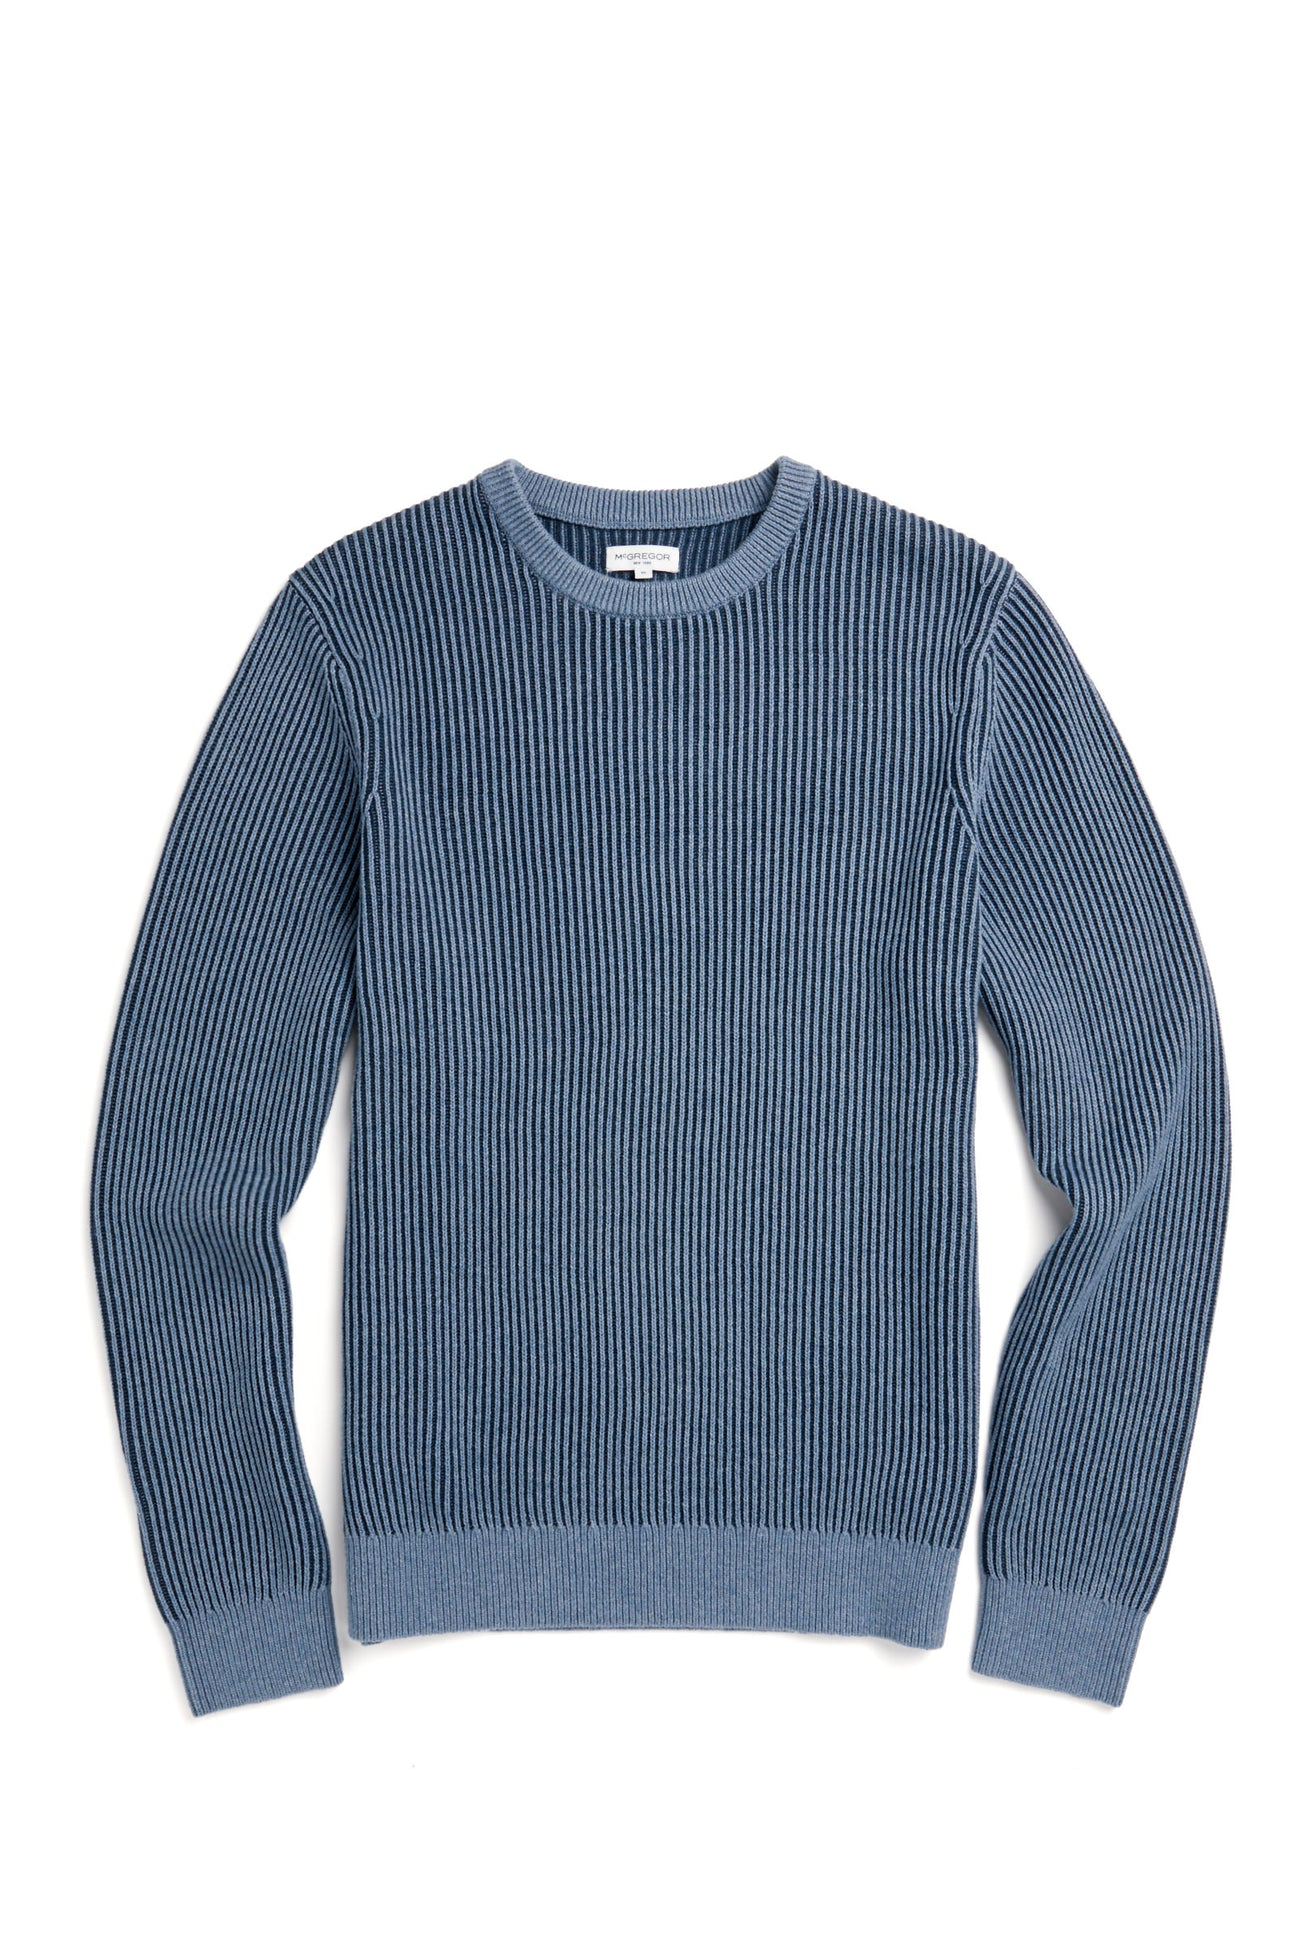 The McG Washed Crew Sweater